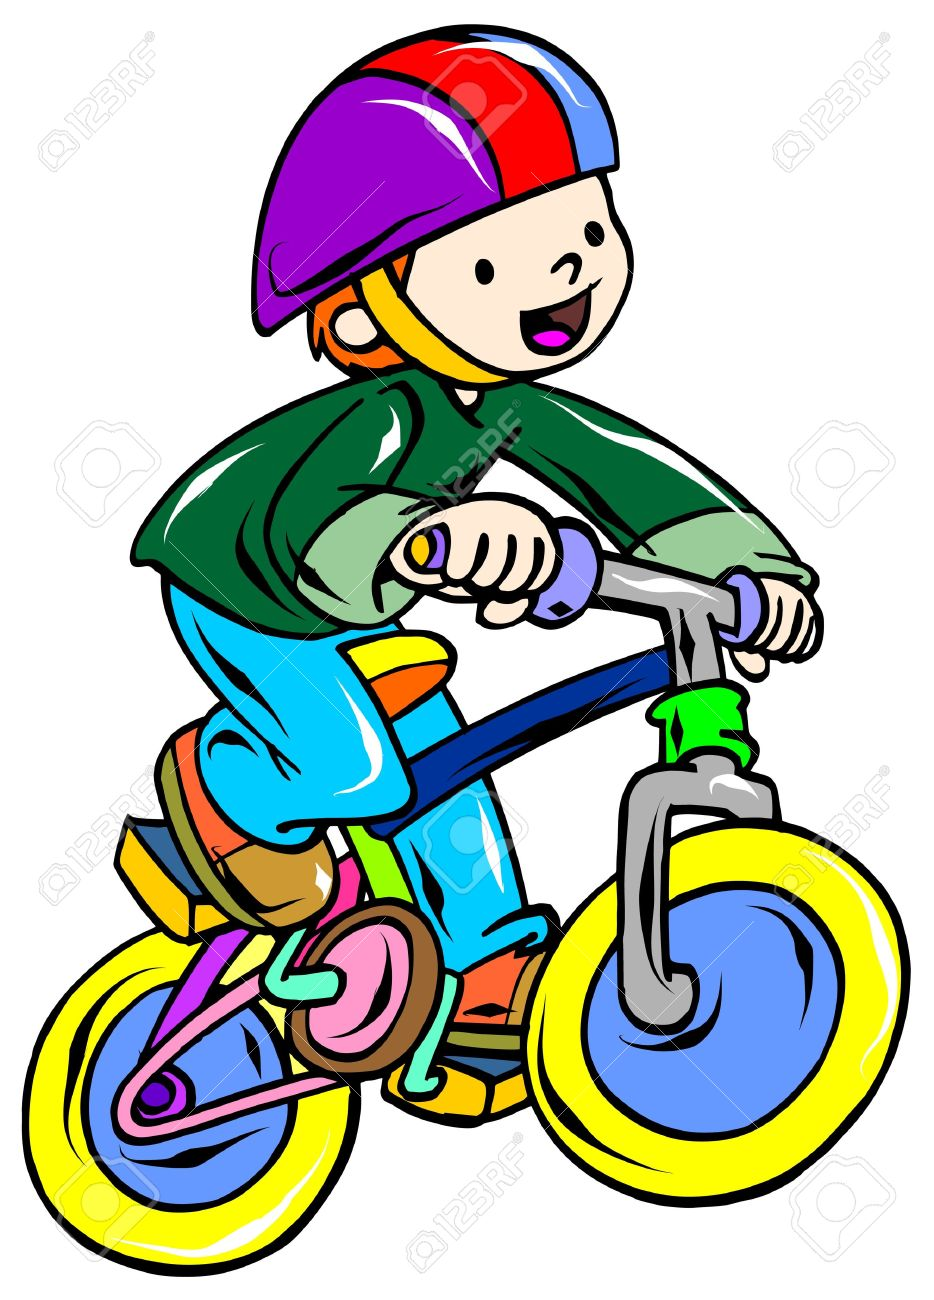 Bicycle riding clipart.